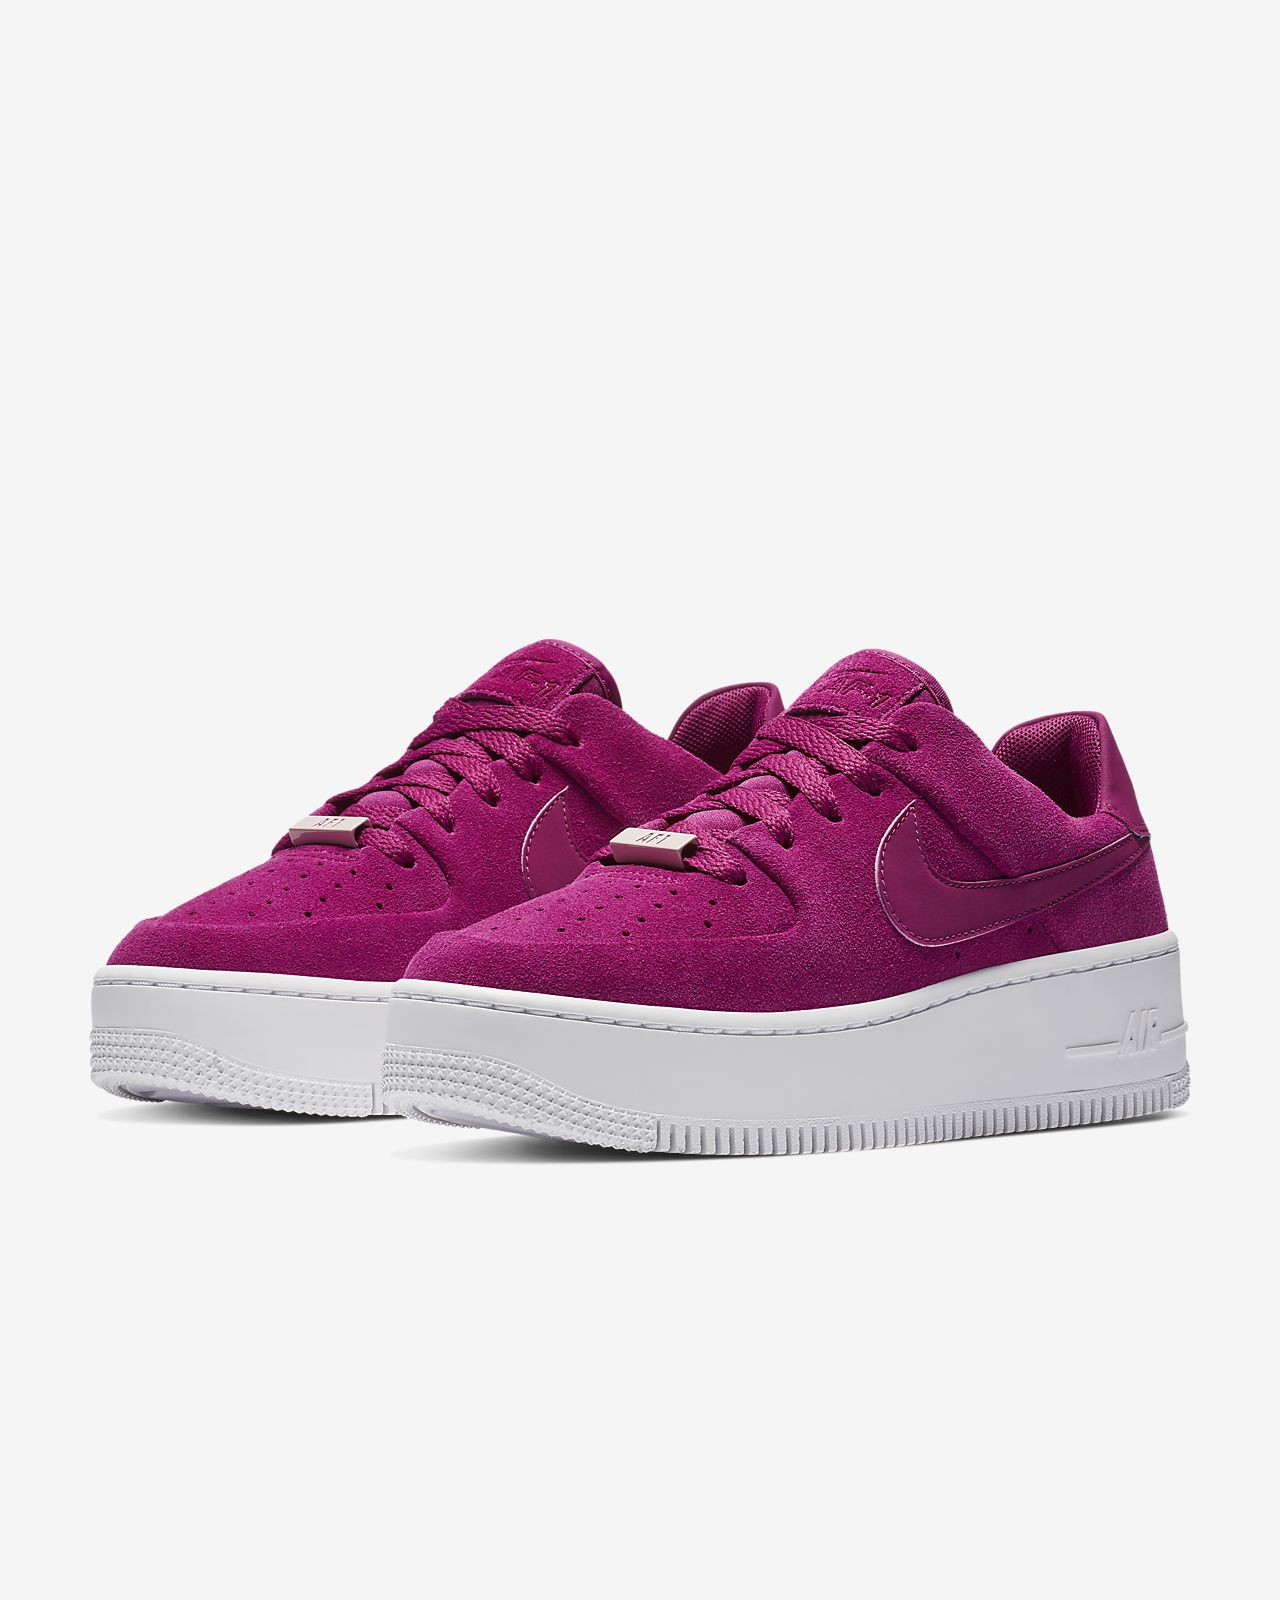 159b282fd73f Nike Air Force 1 Sage Low Women s Shoe. Nike.com